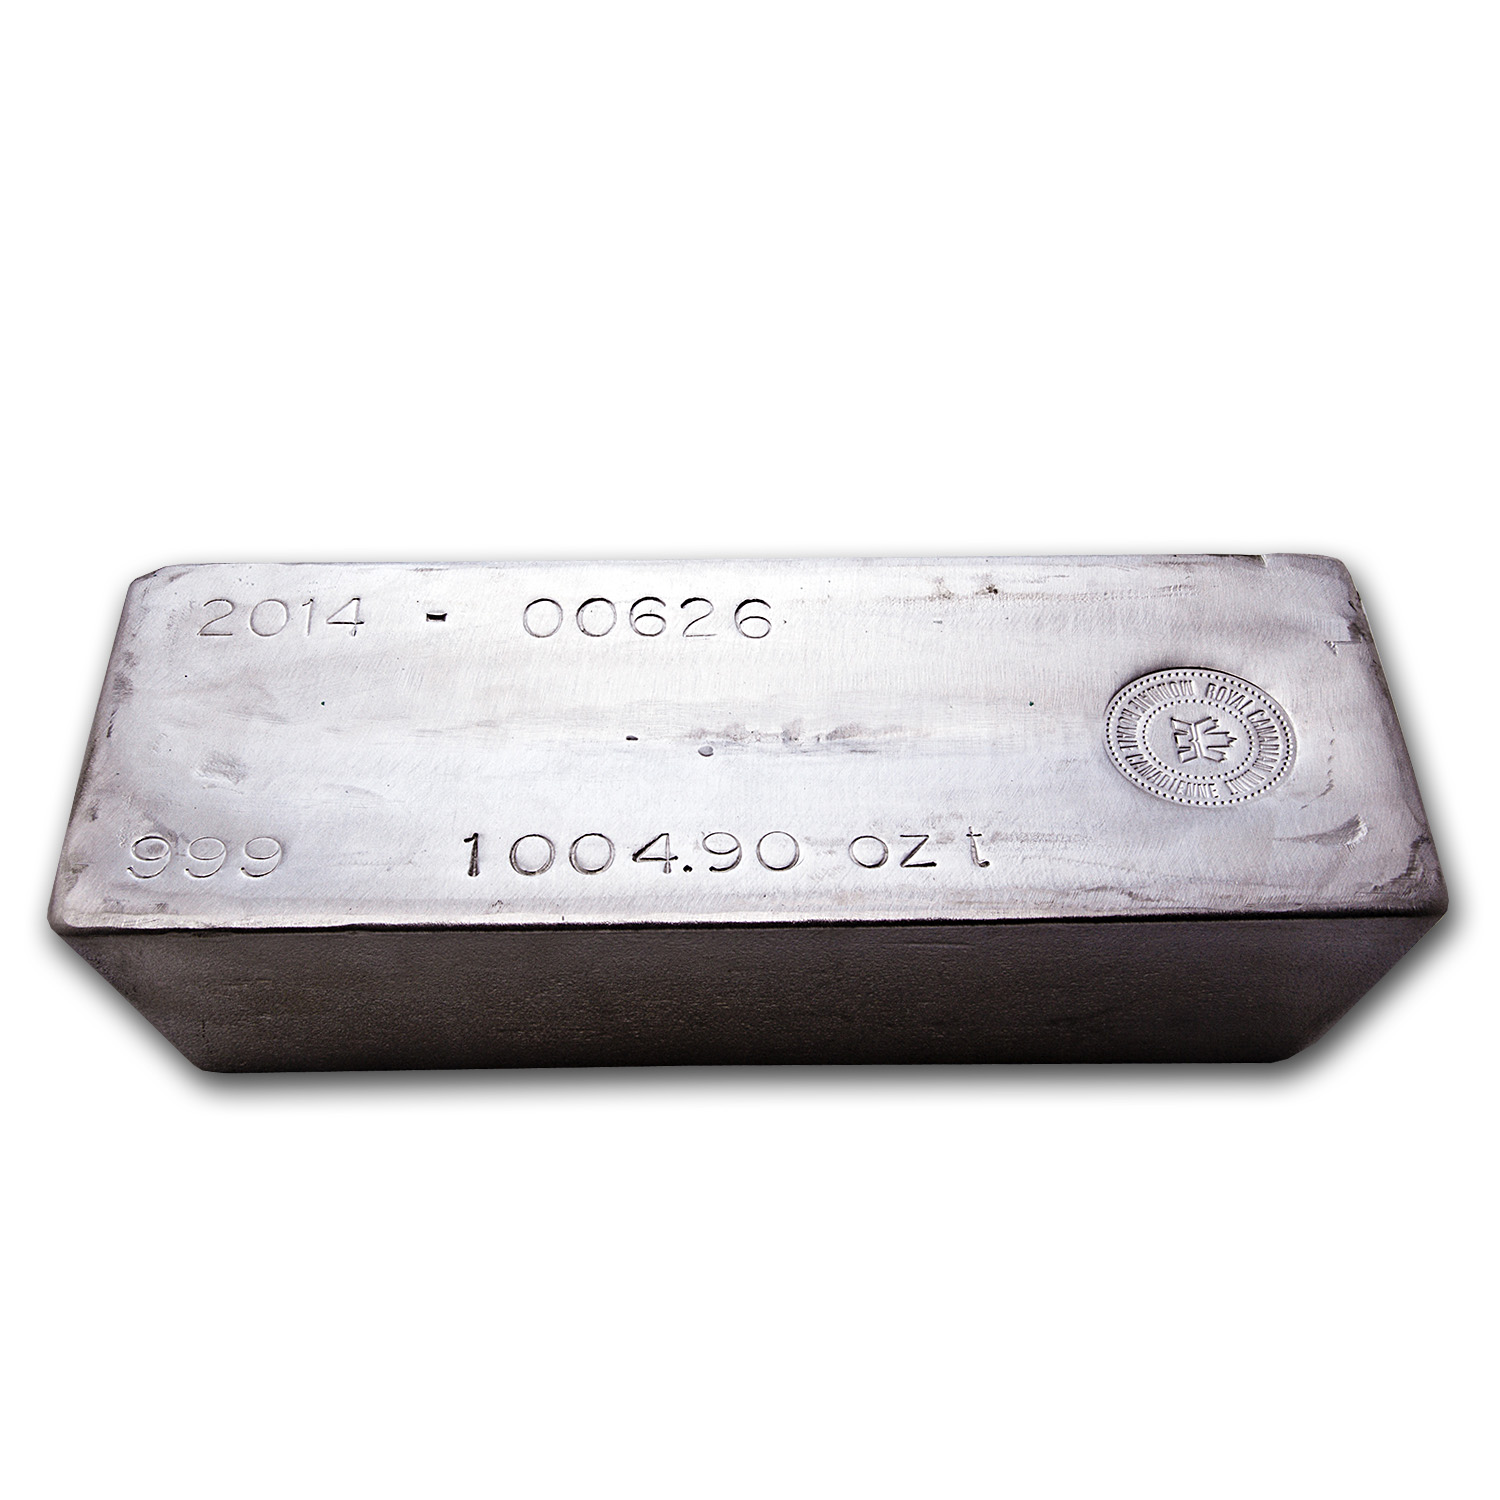 988.60 oz Silver Bar - Royal Canadian Mint (COMEX Deliverable)